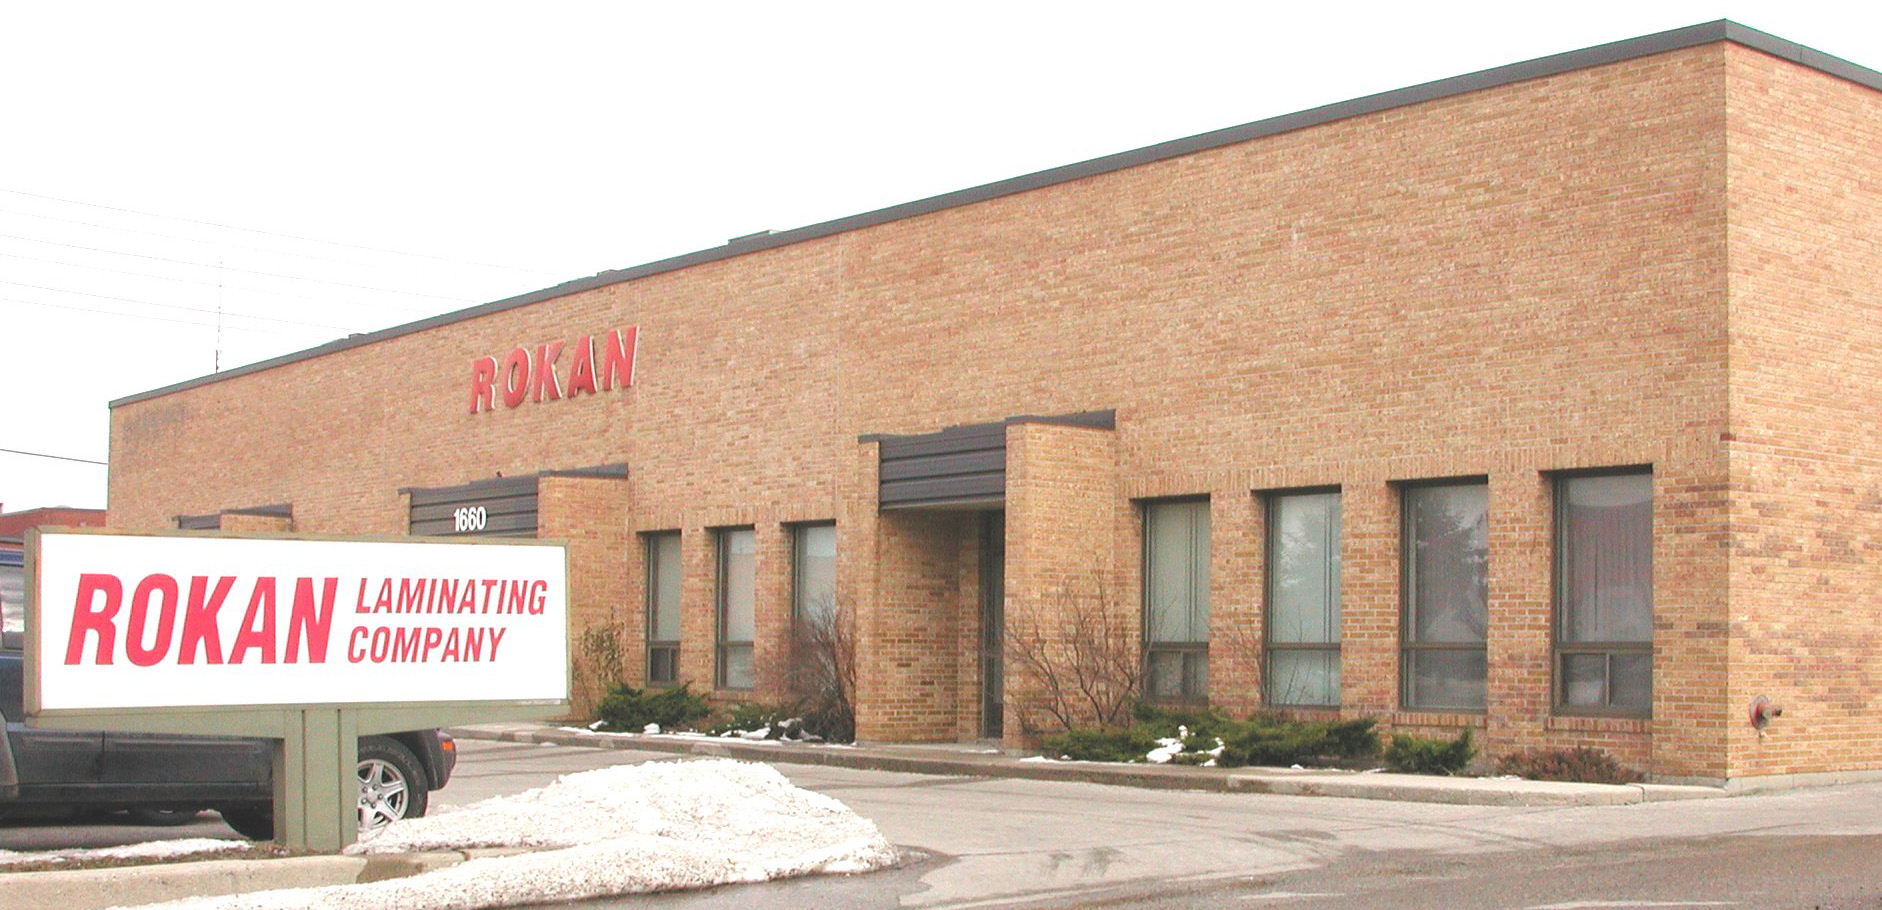 Rokan Laminating Building